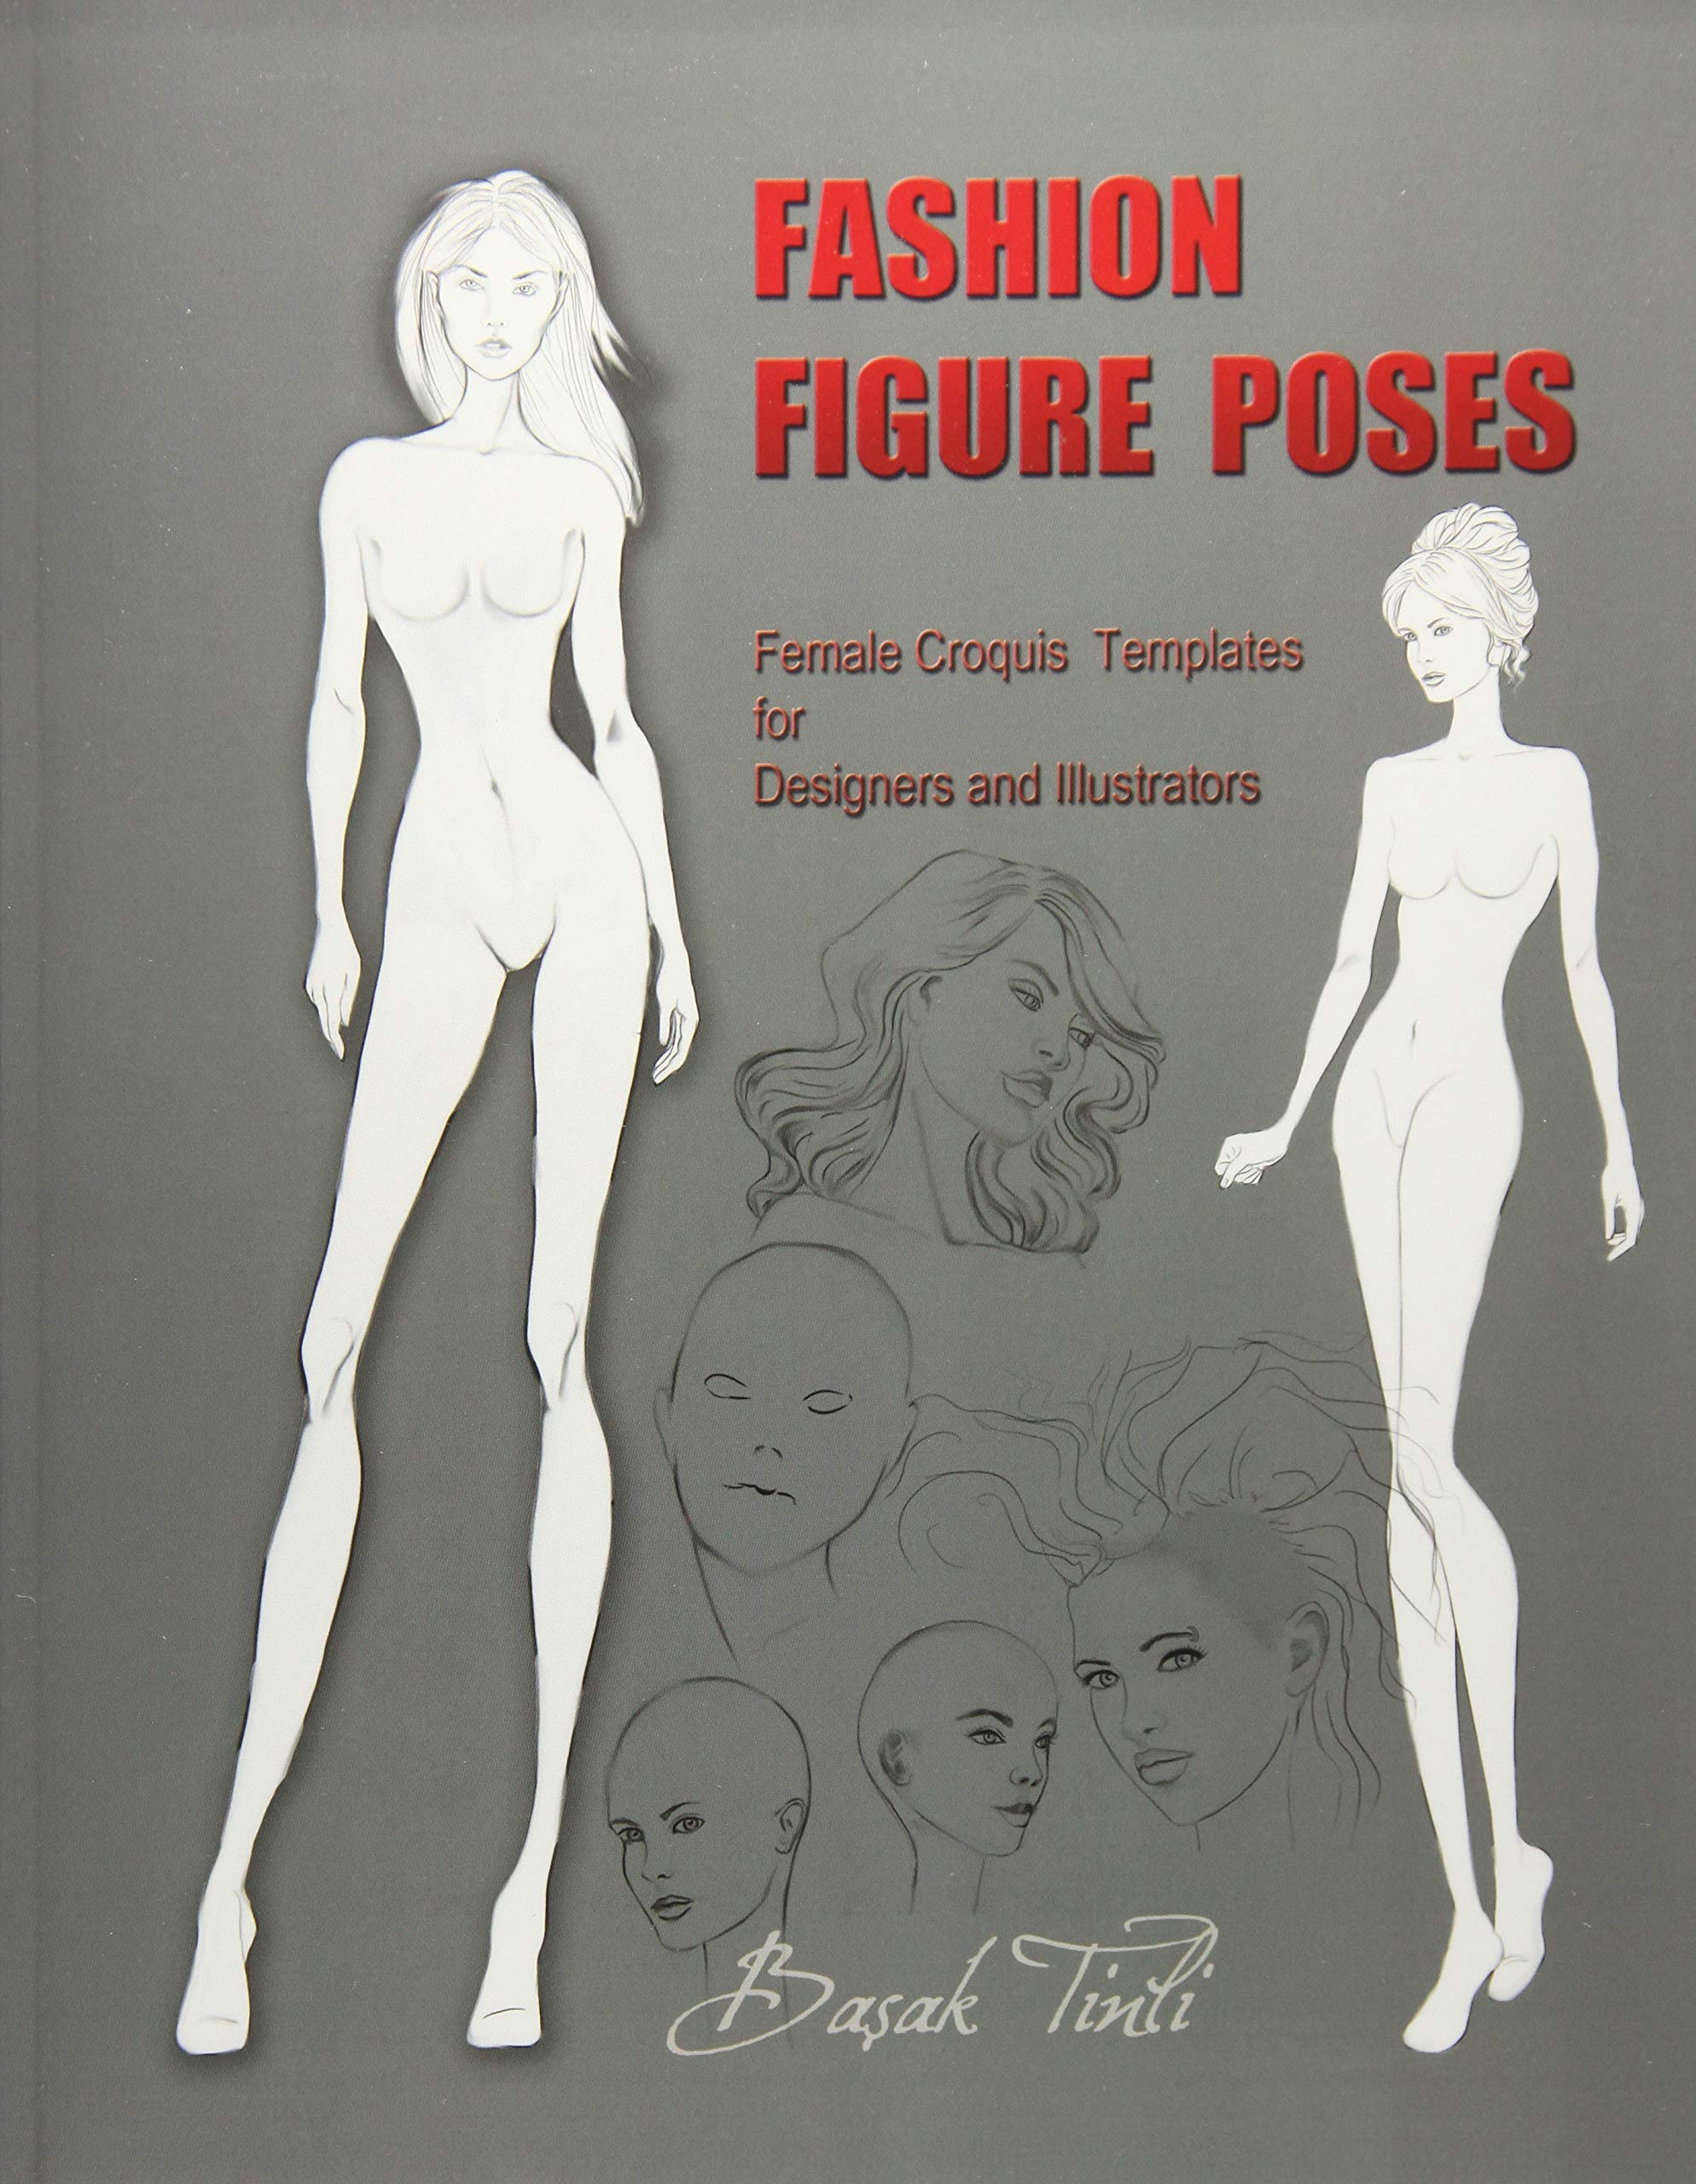 buy fashion figure poses female croquis templates for designers and